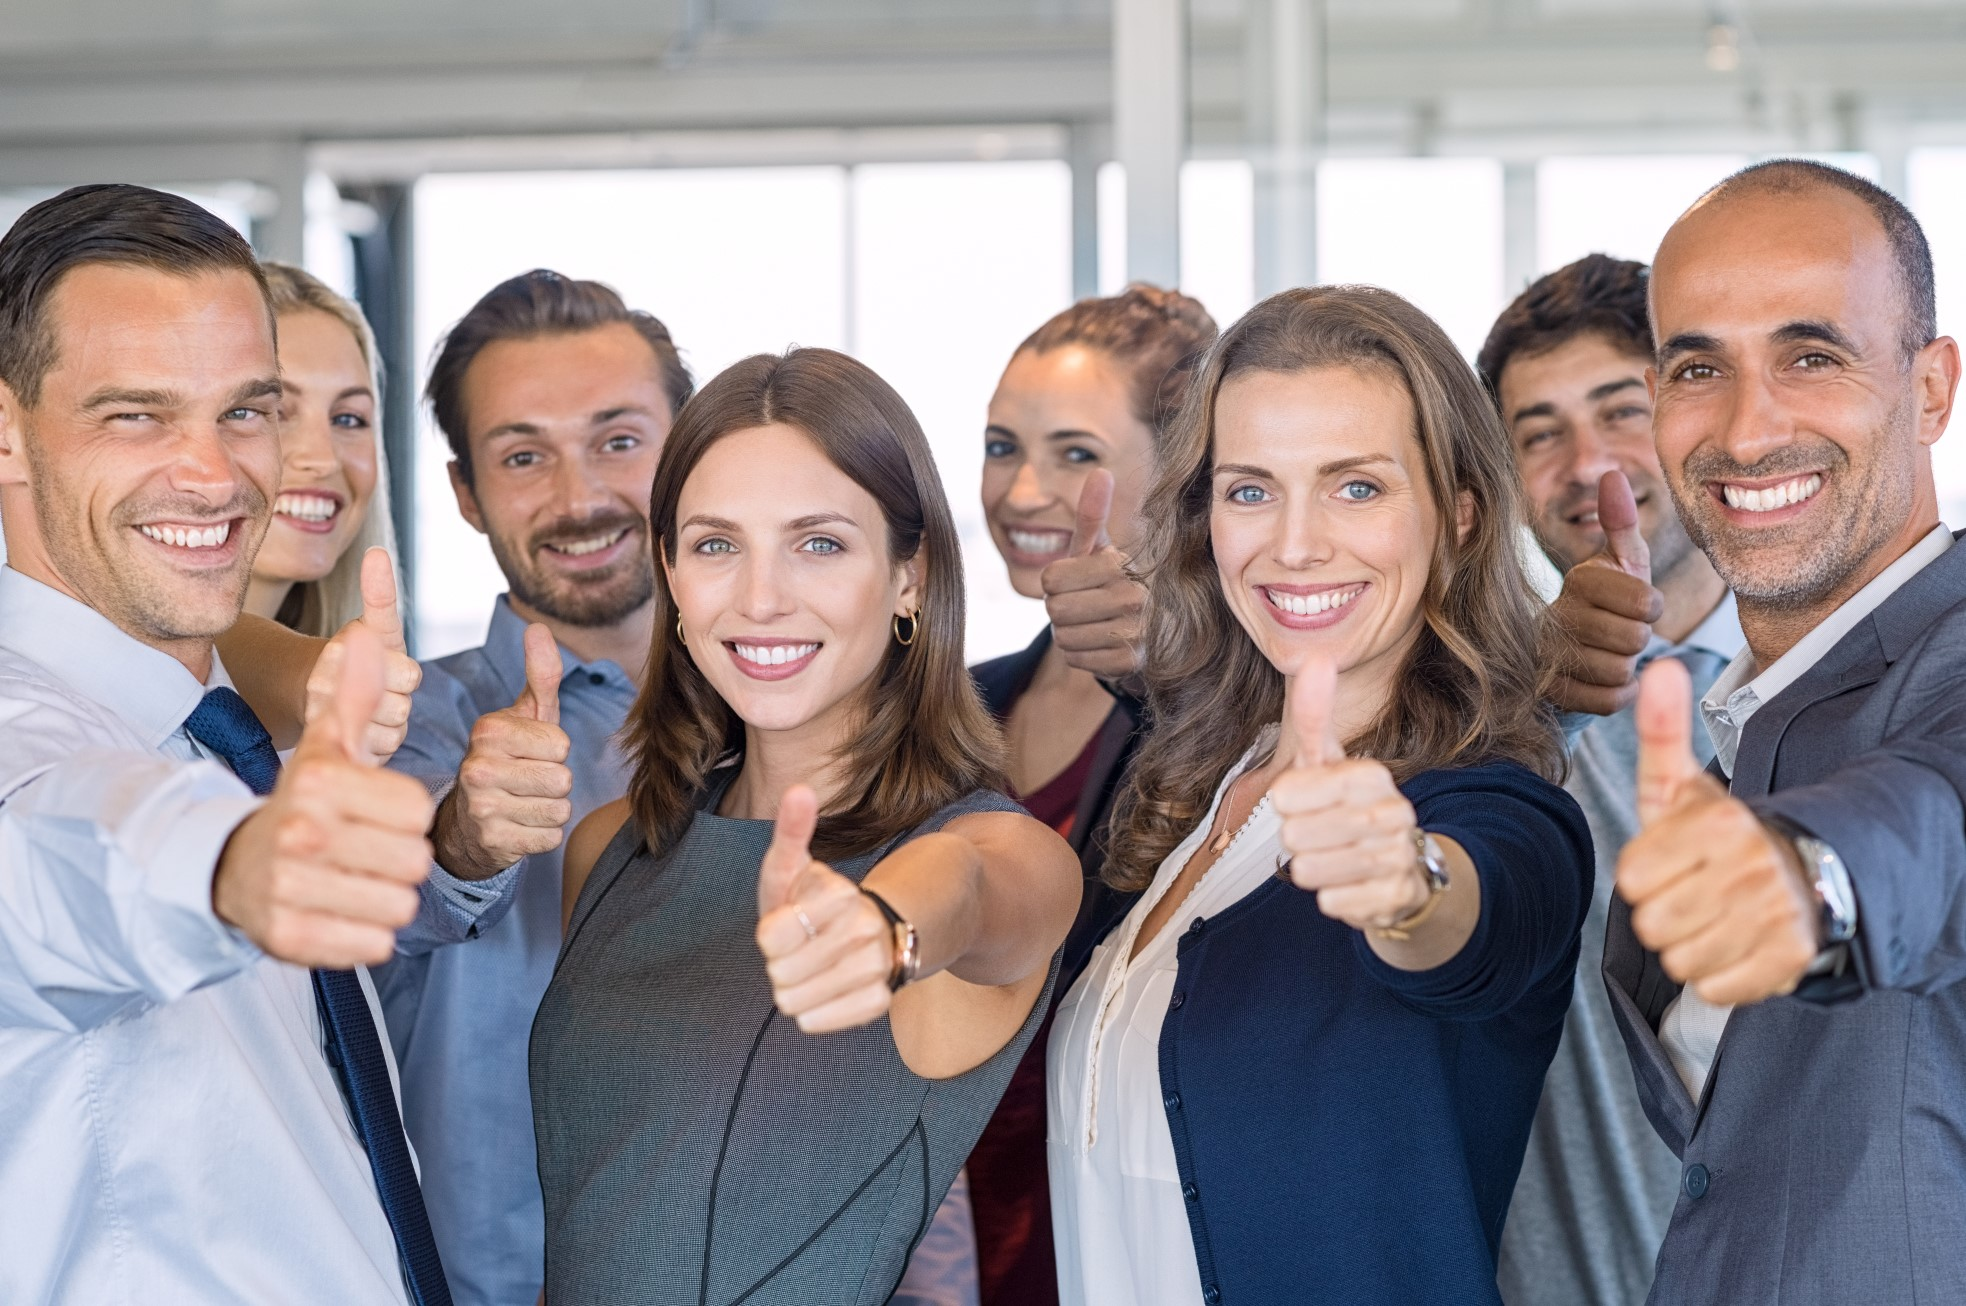 Group of happy business people showing sign of success.